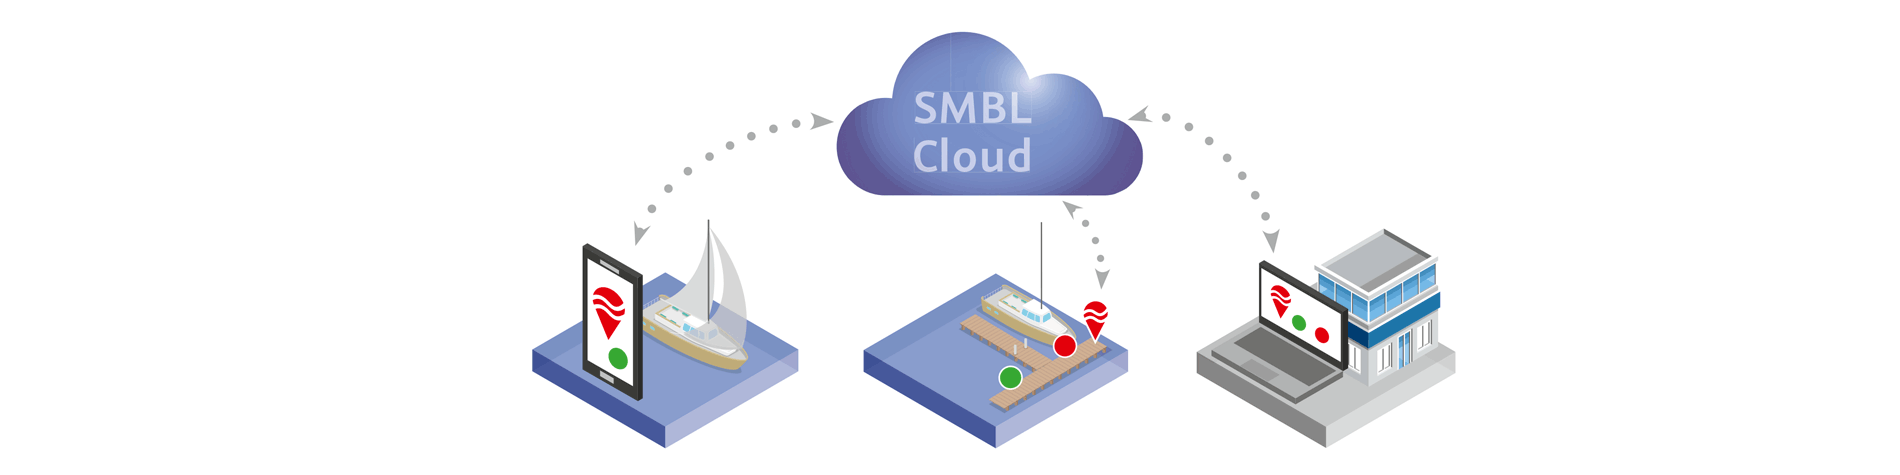 Graphic of the SMBL system with the different parts. Booking from the boat, sensor at the jettie, the SMBL cloud and the connection to the marina management system